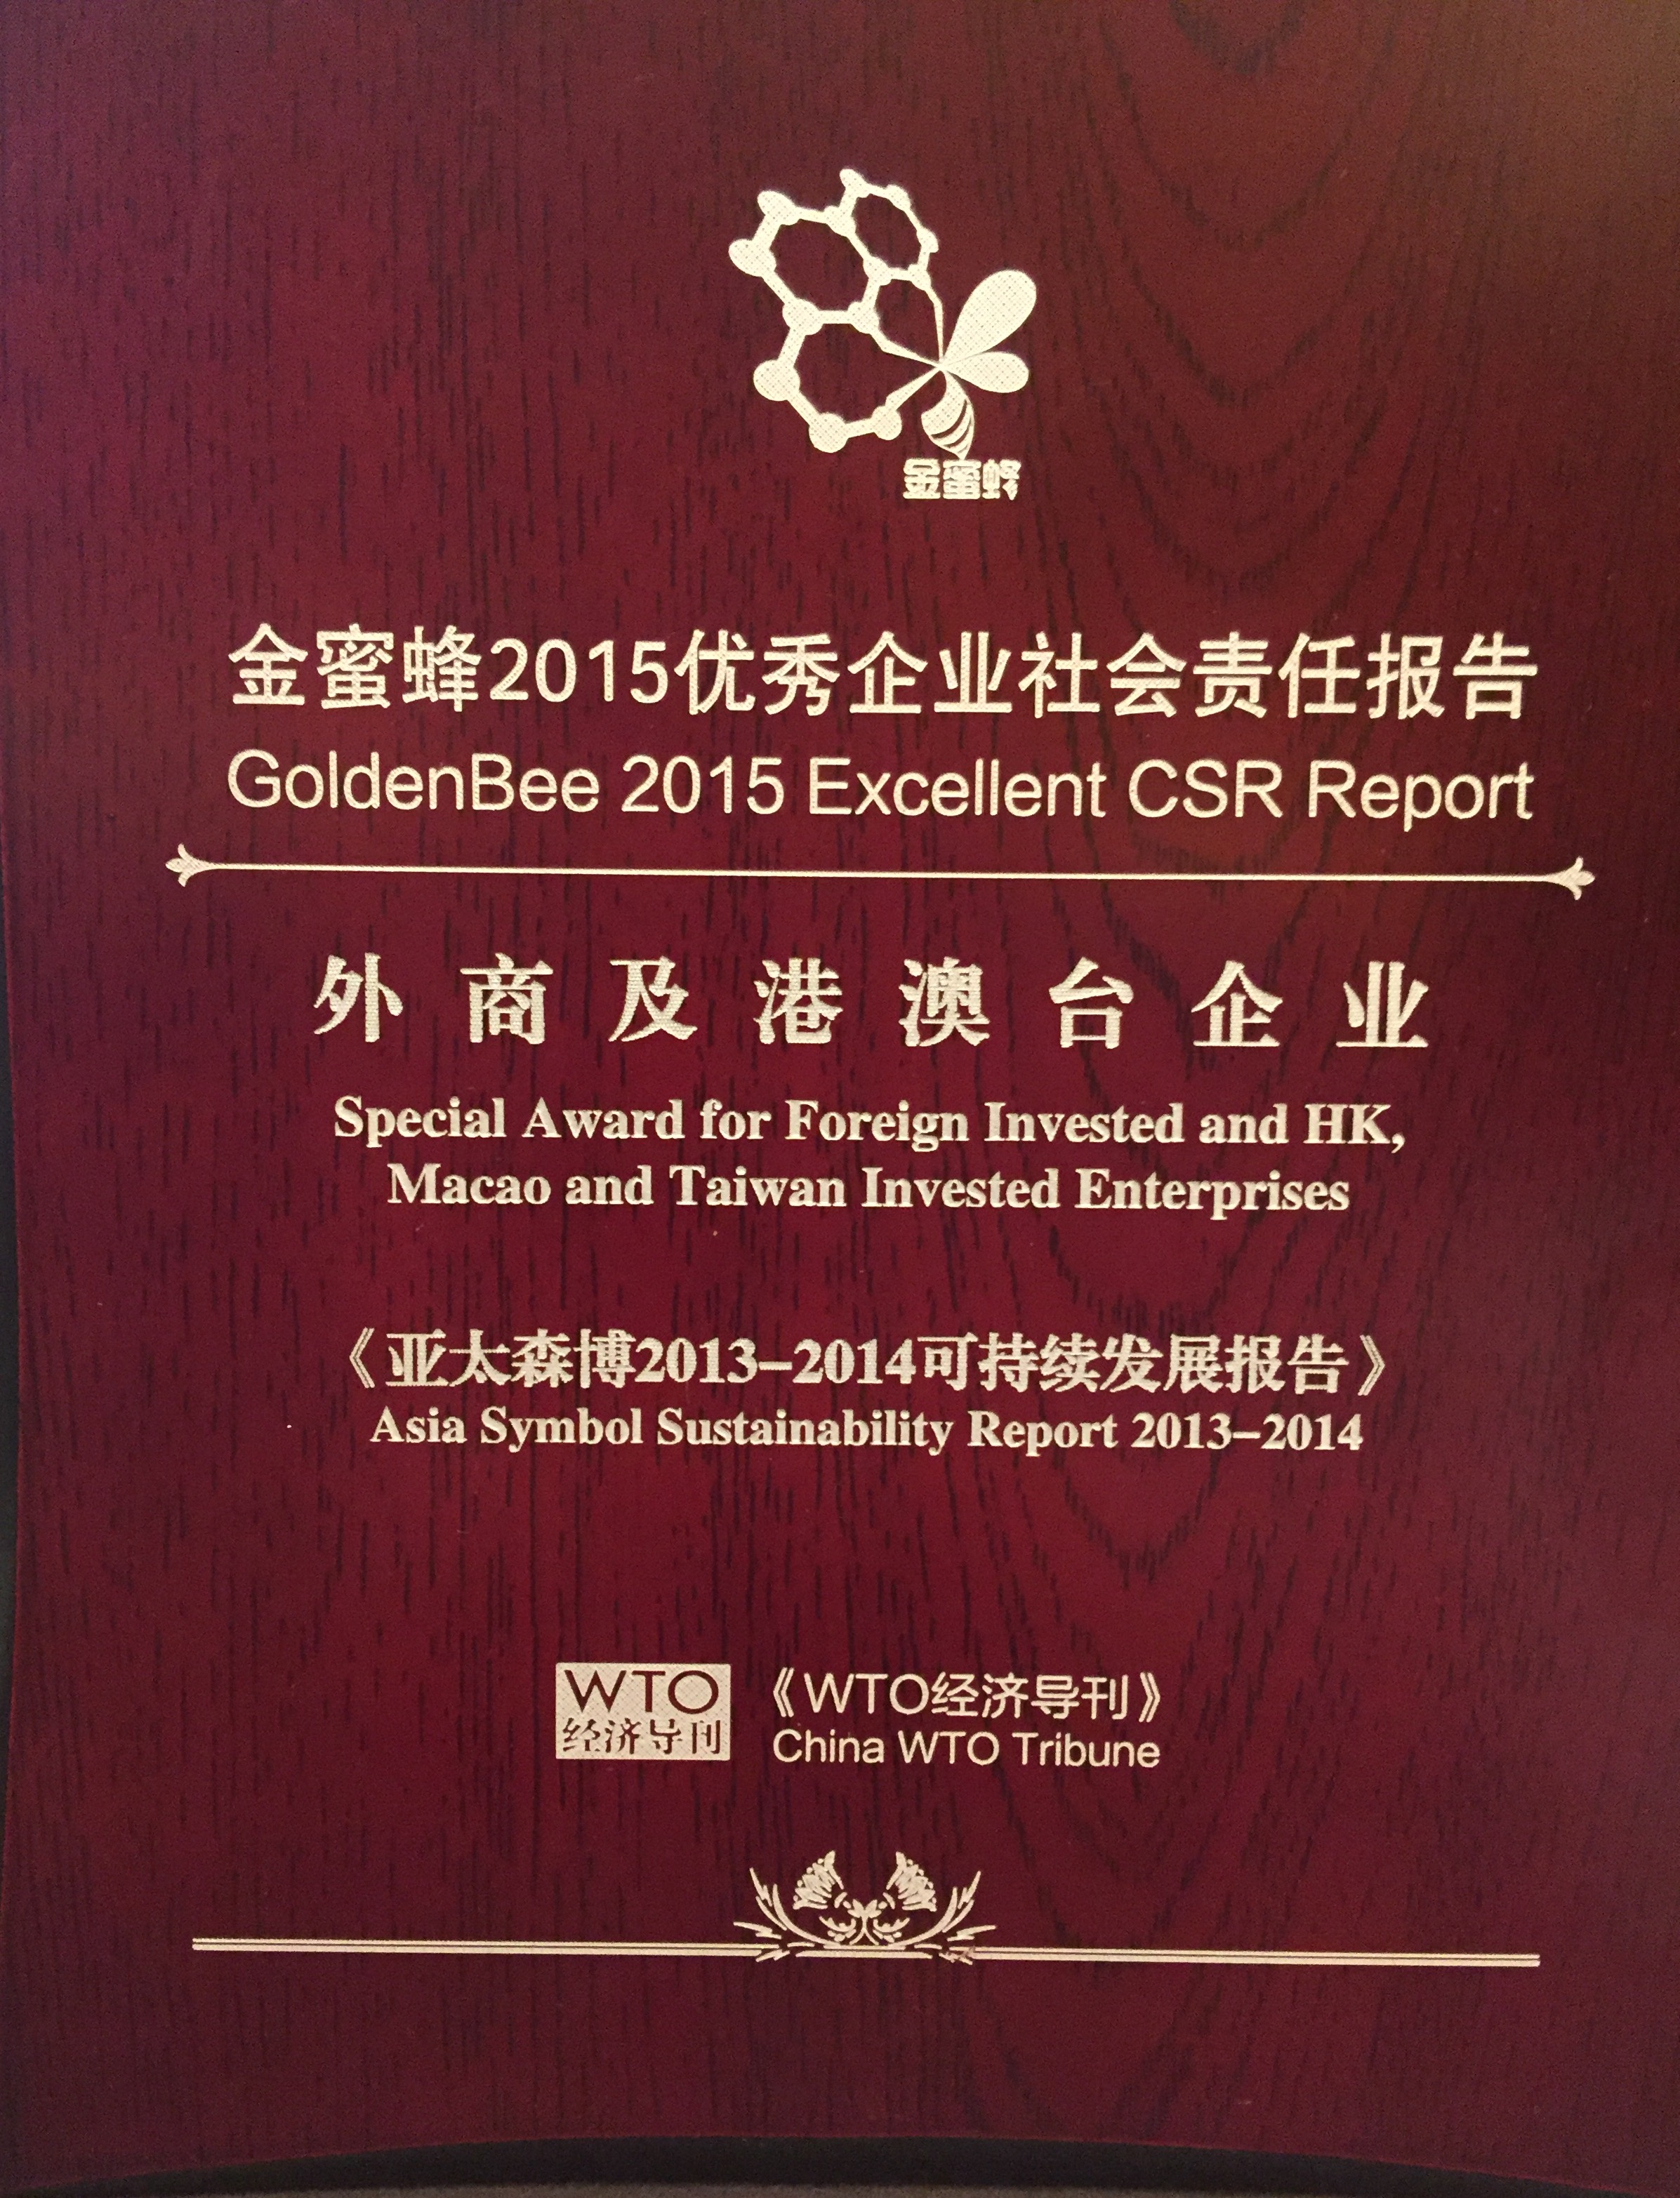 Asia Symbol clinches the Golden Bee Award for its 2013-2014 Sustainability Report